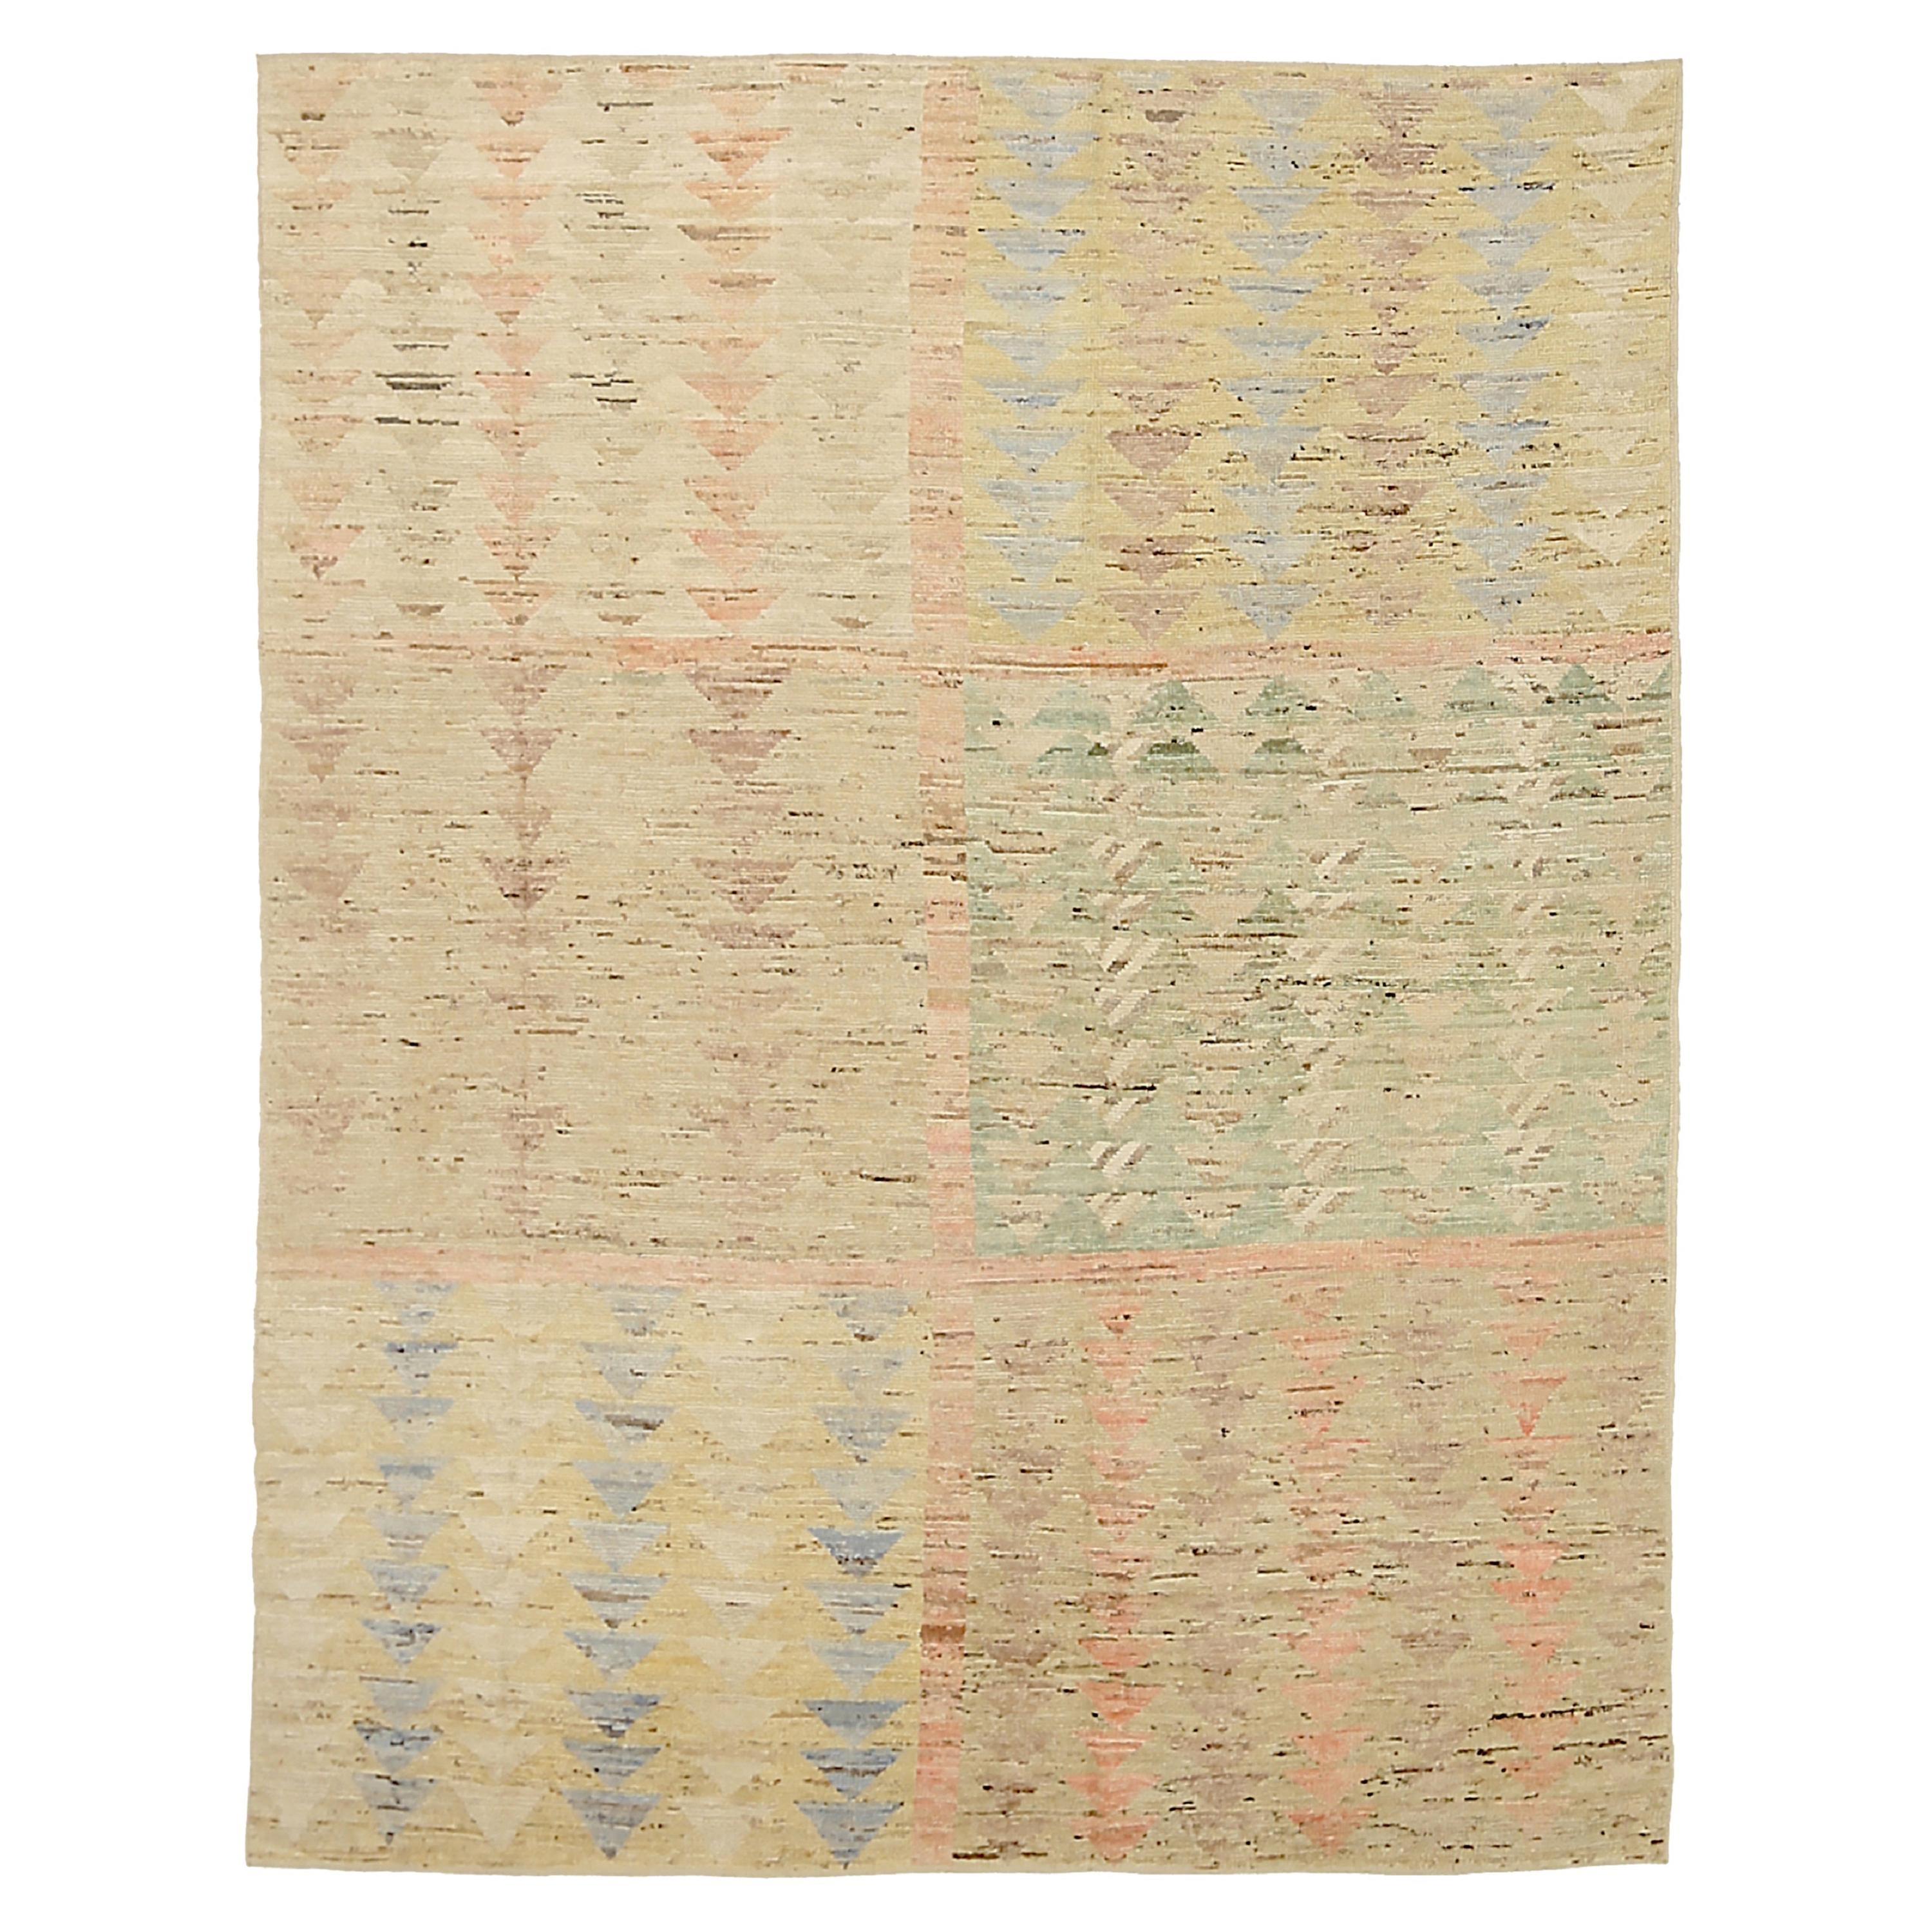 Nazmiyal Collection Geometric Modern Distressed Area Rug. 7 ft 6 in x 9 ft 7 in